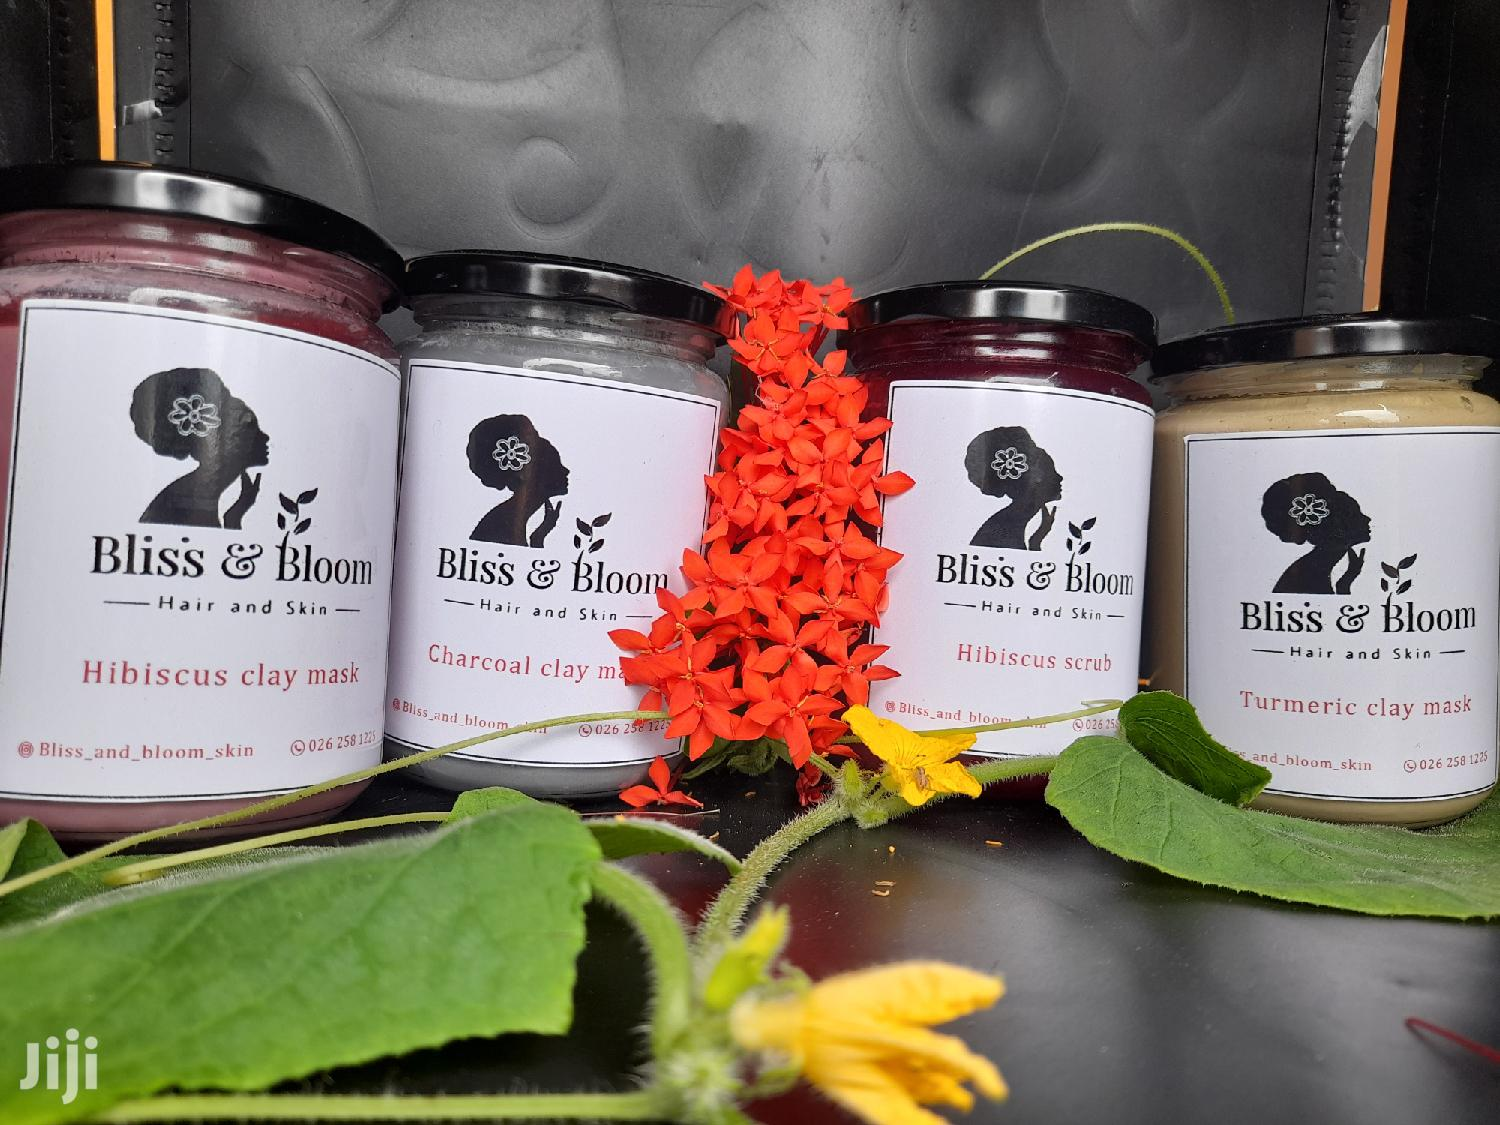 Archive: Bliss & Bloom Skin Care Products